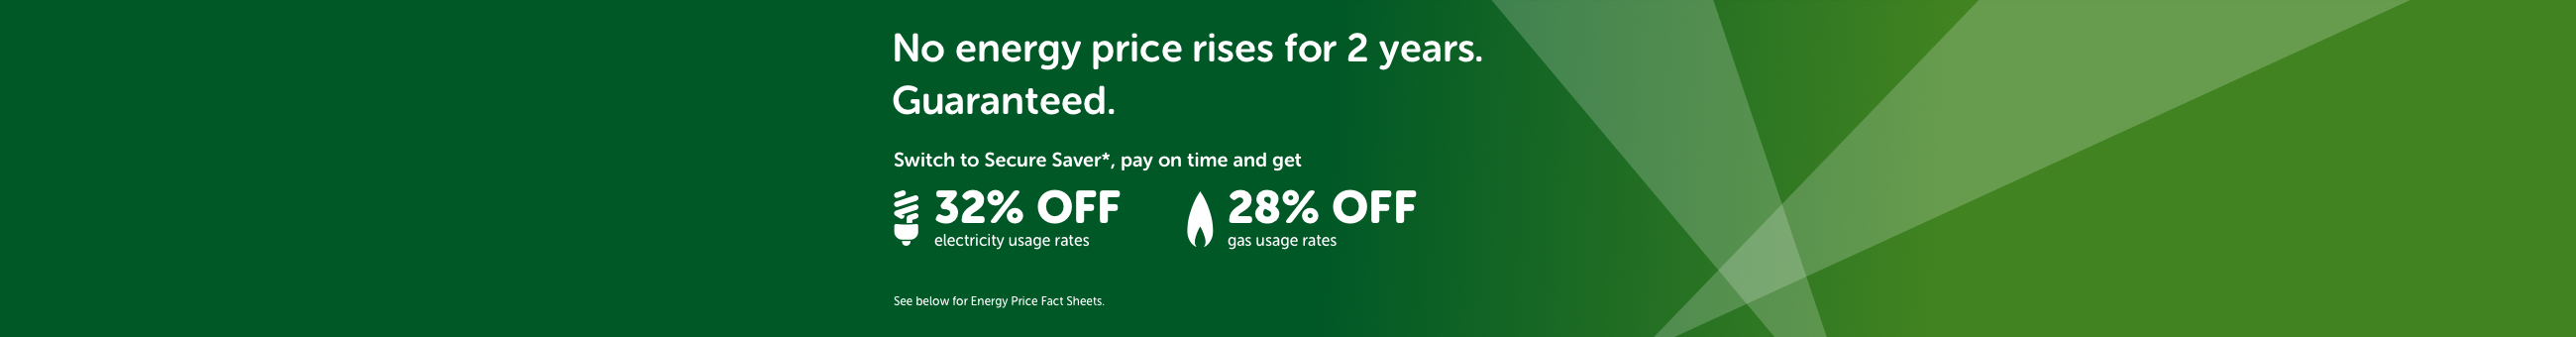 No energy price rises for 2 years. Guaranteed.